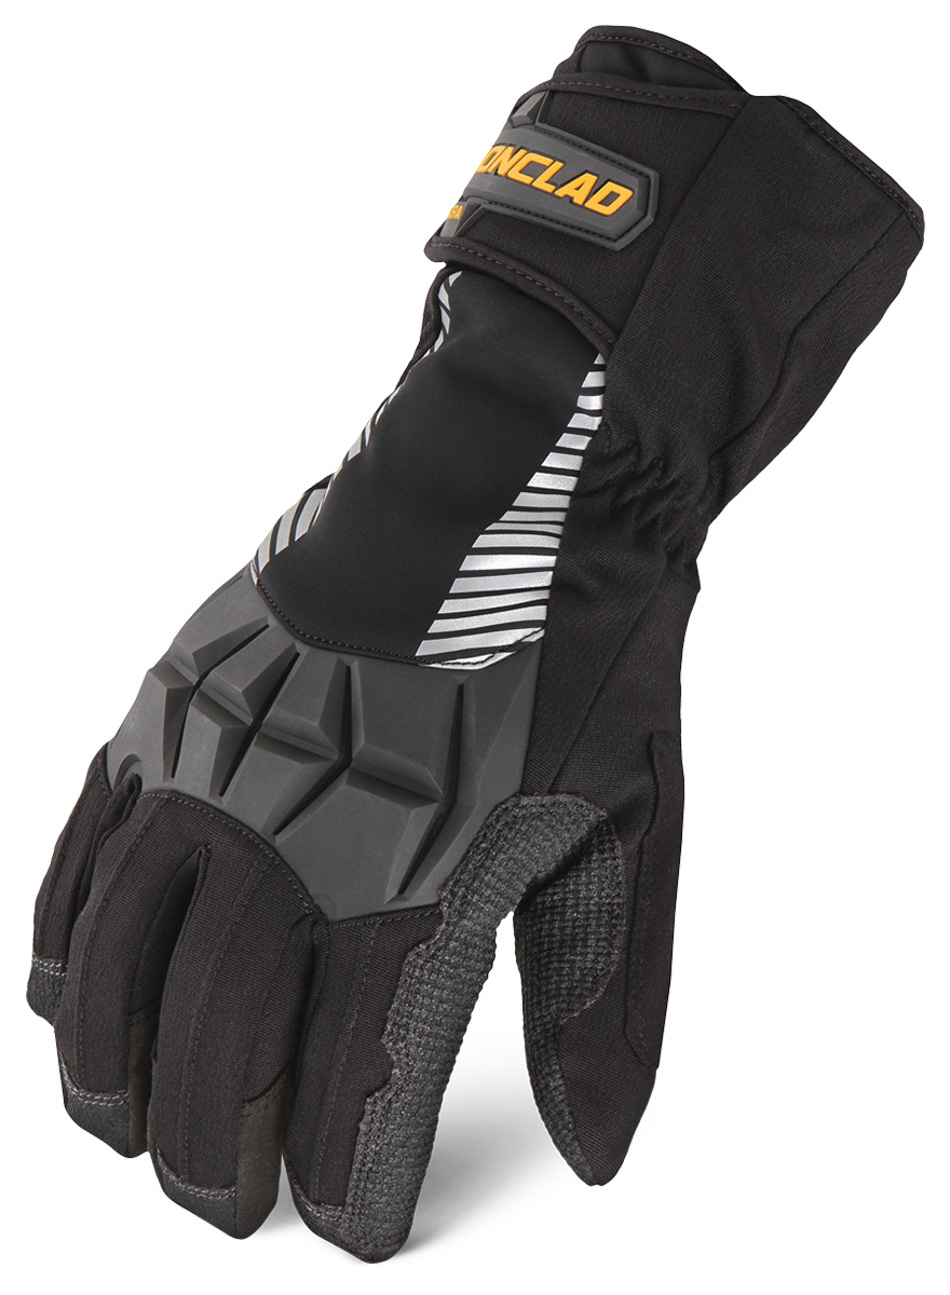 Ironclad CCT2-05-XL Gloves, Shop, Cold Condition Tundra, Insulated / Reinforced Fingertips and Palm, Hook and Loop Closure, Kevlar, Black, X-Large, Pair